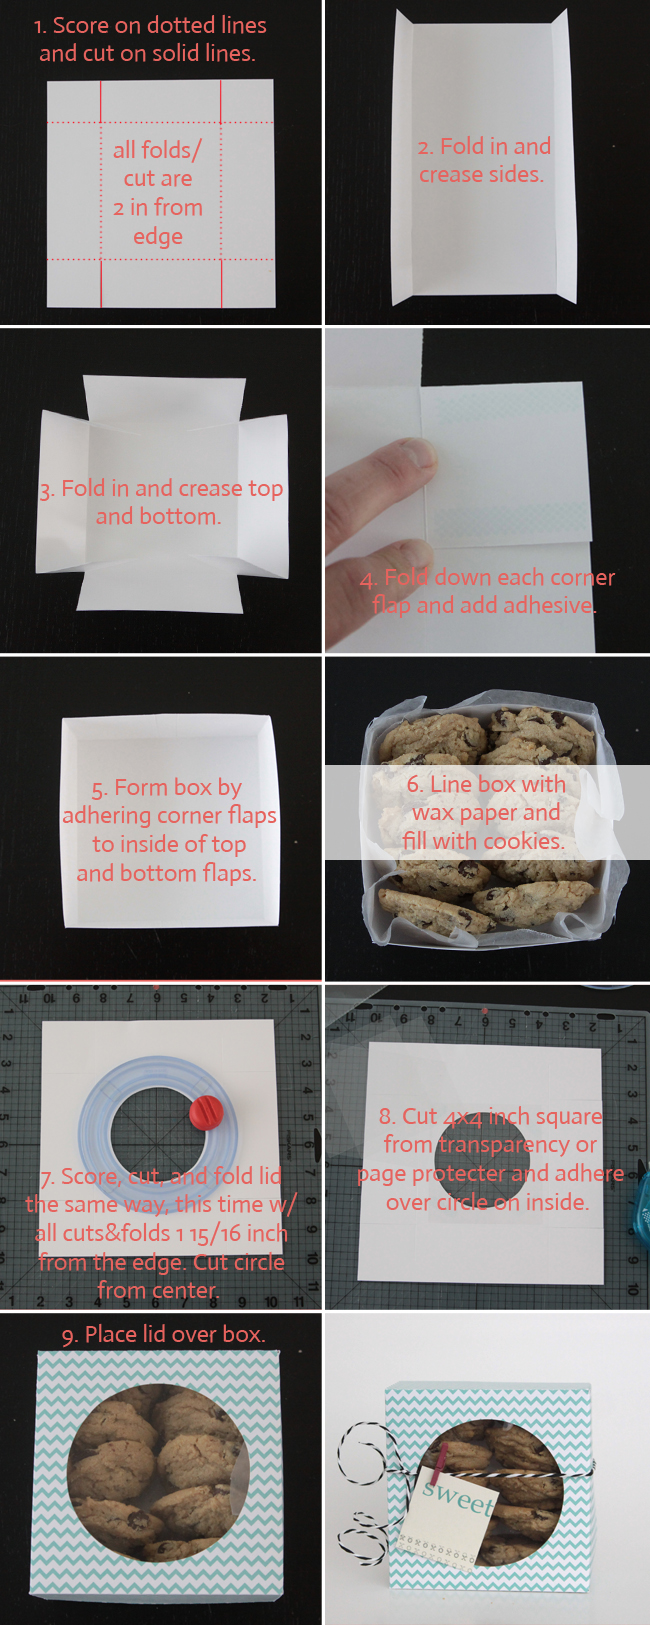 Folding instructions for paper cookie box